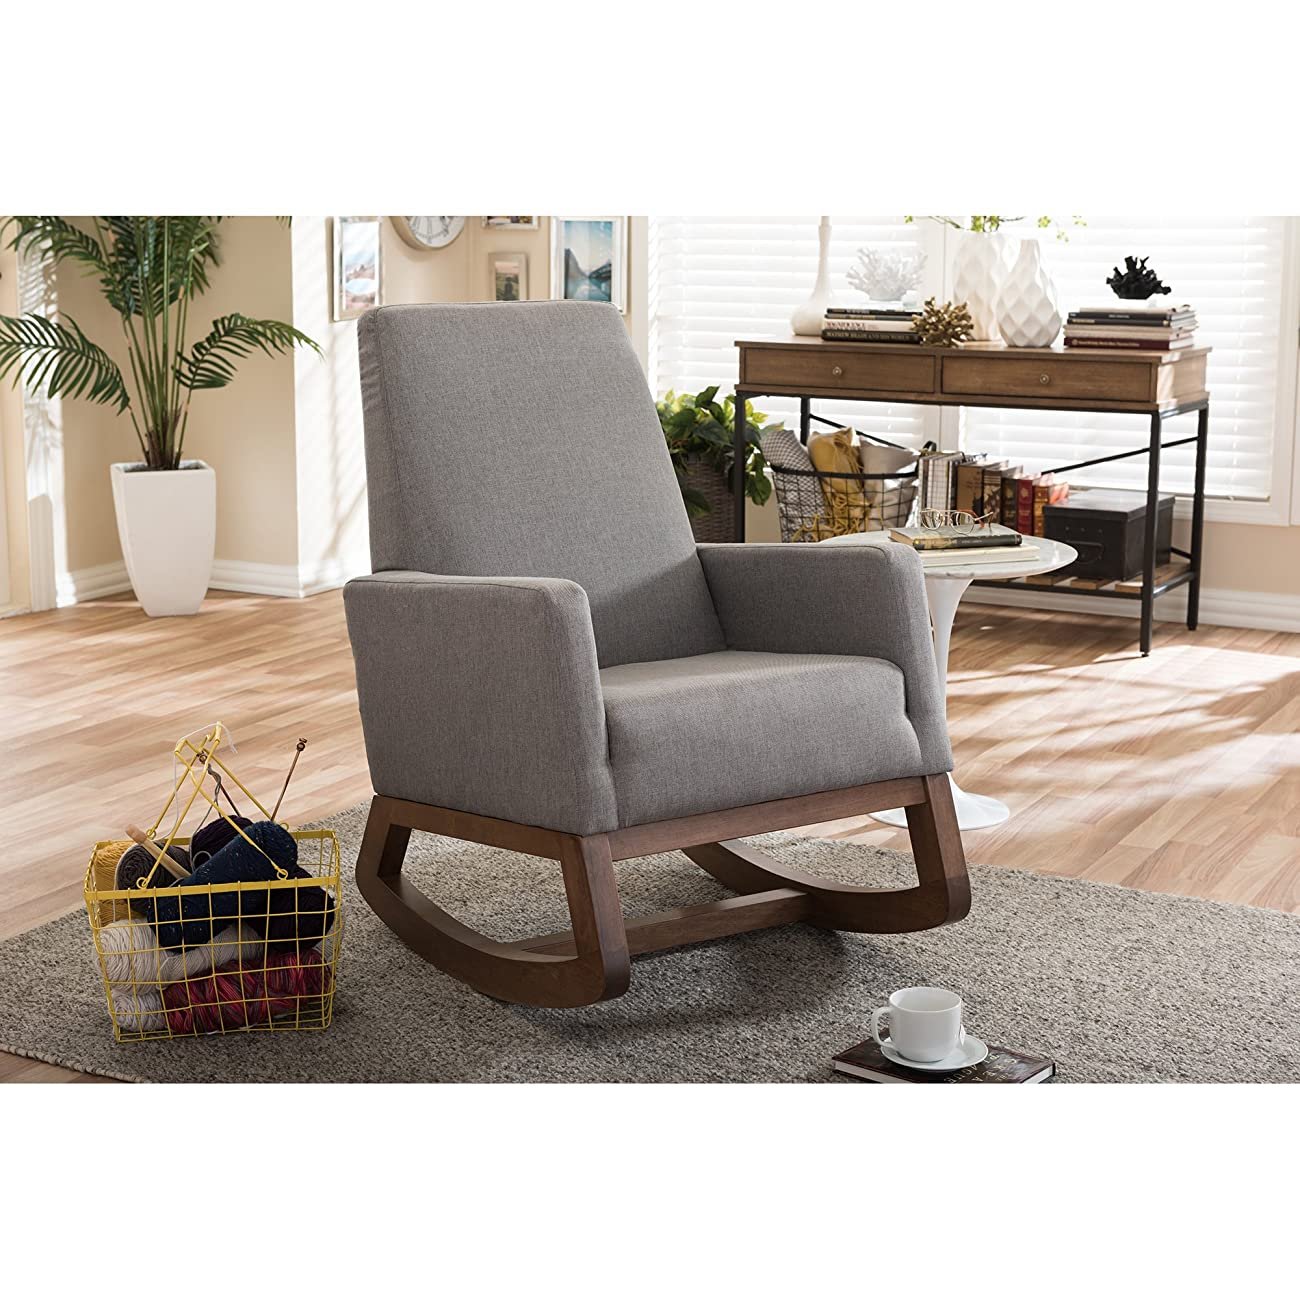 Baxton Studio Yashiya Mid Century Retro Modern Fabric Upholstered Rocking Chair, Grey 5